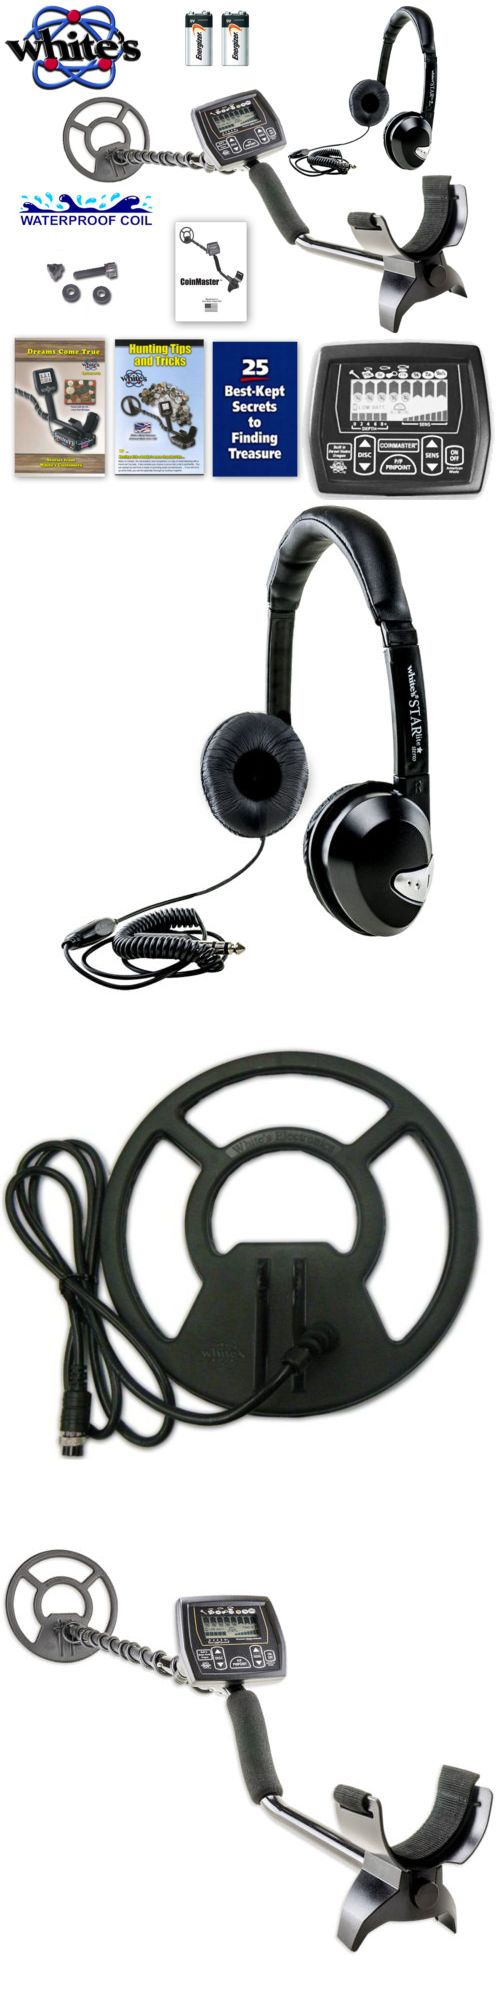 Metal Detectors: Whites Coinmaster Metal Detector W/ 9 Waterproof Search Coil And Headphones BUY IT NOW ONLY: $179.0